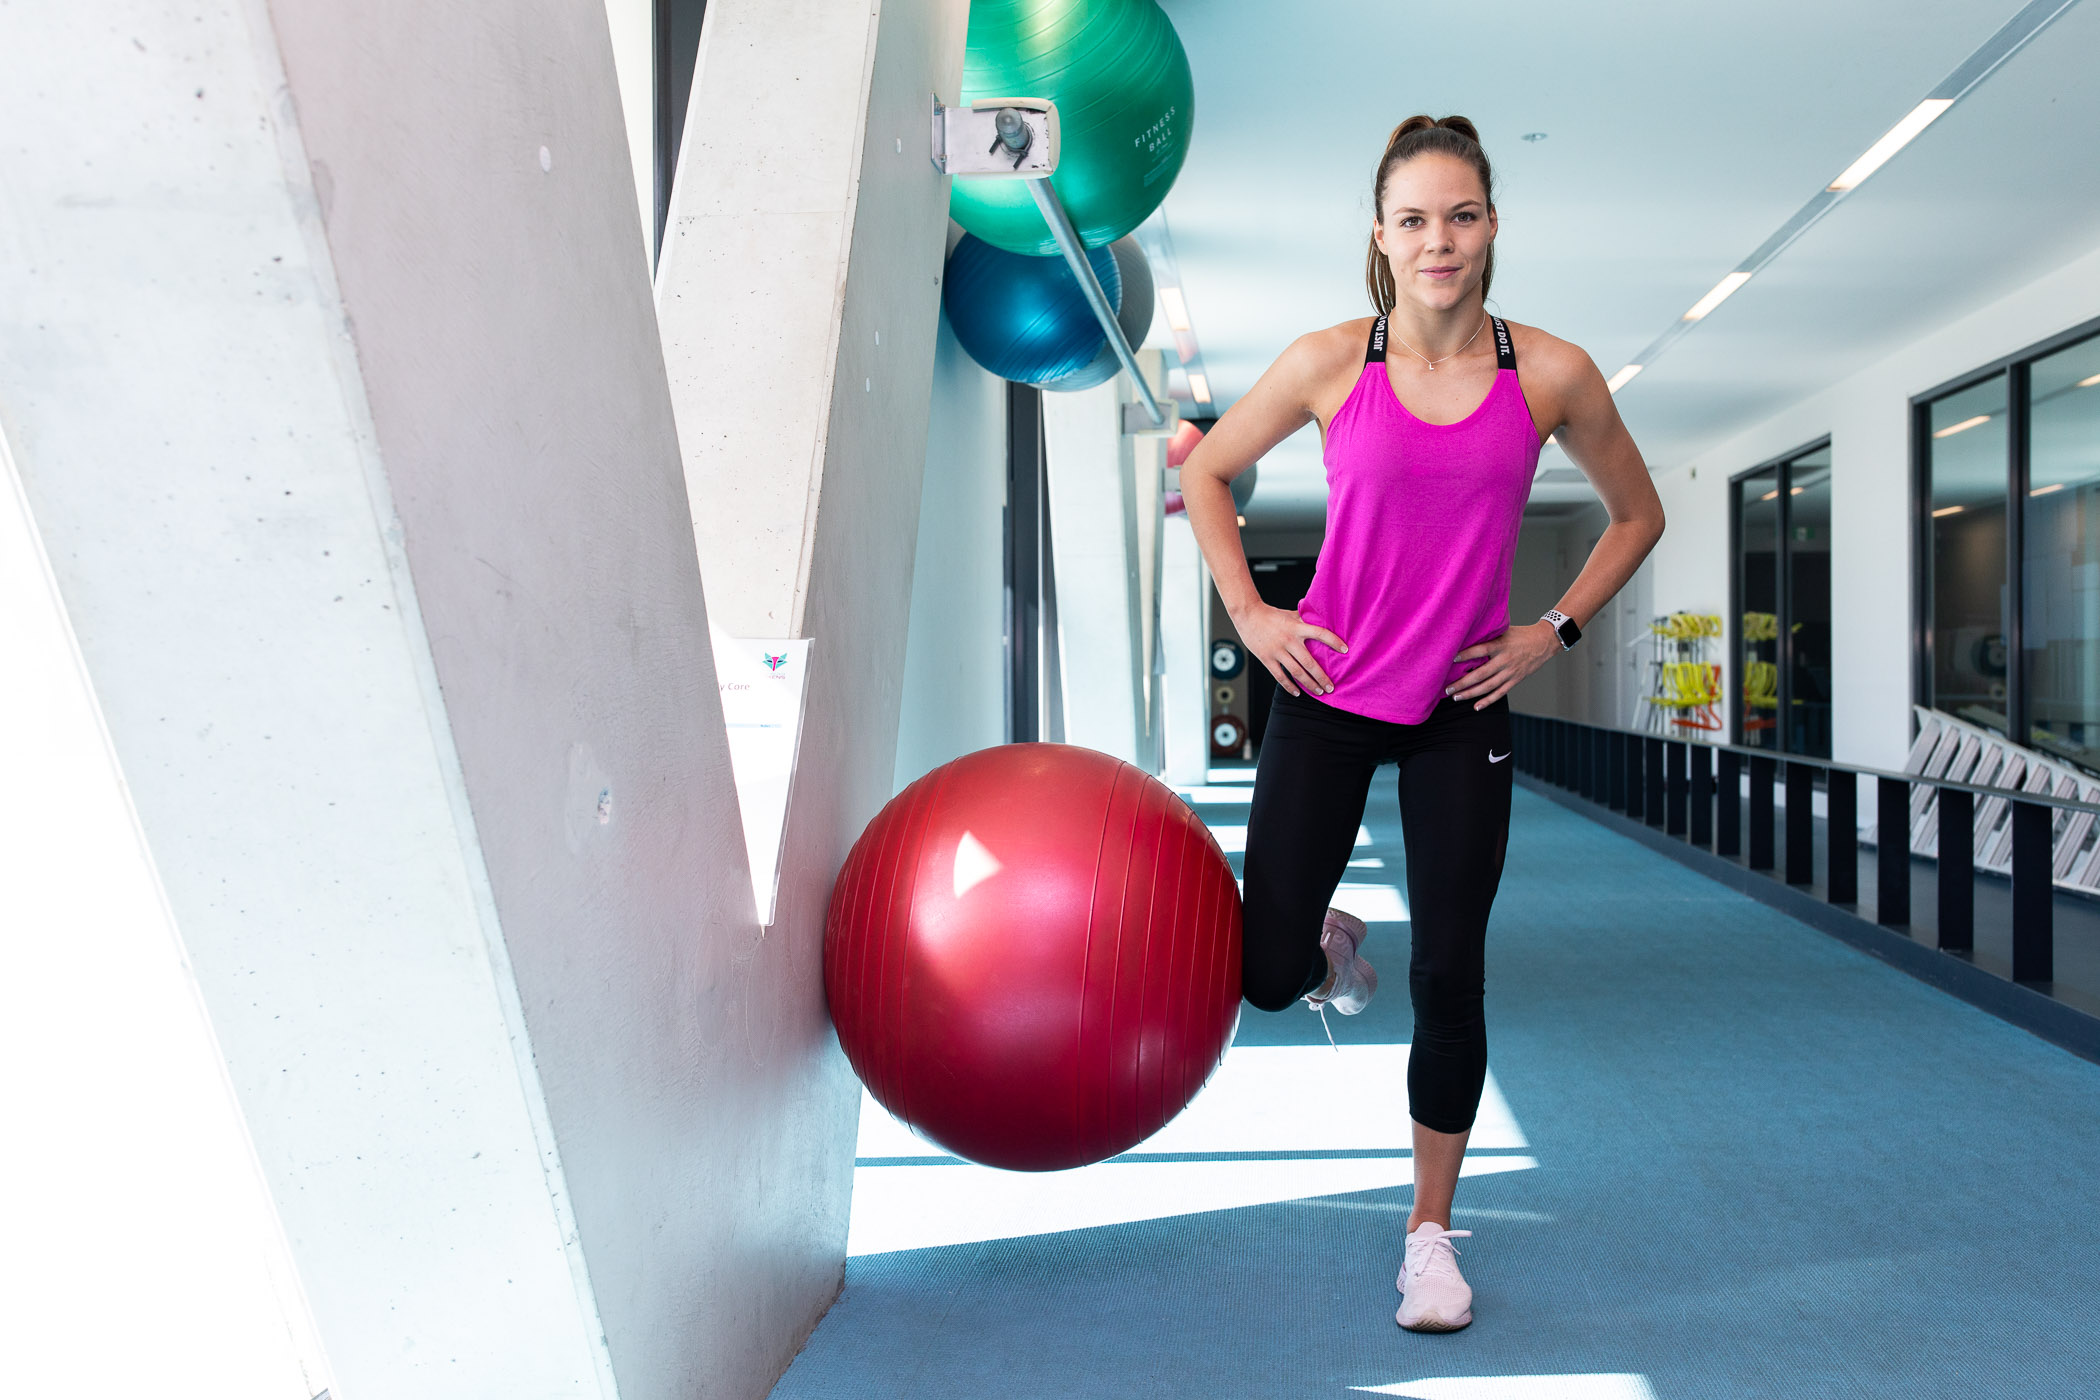 Exercises that require strength and control are important for runners